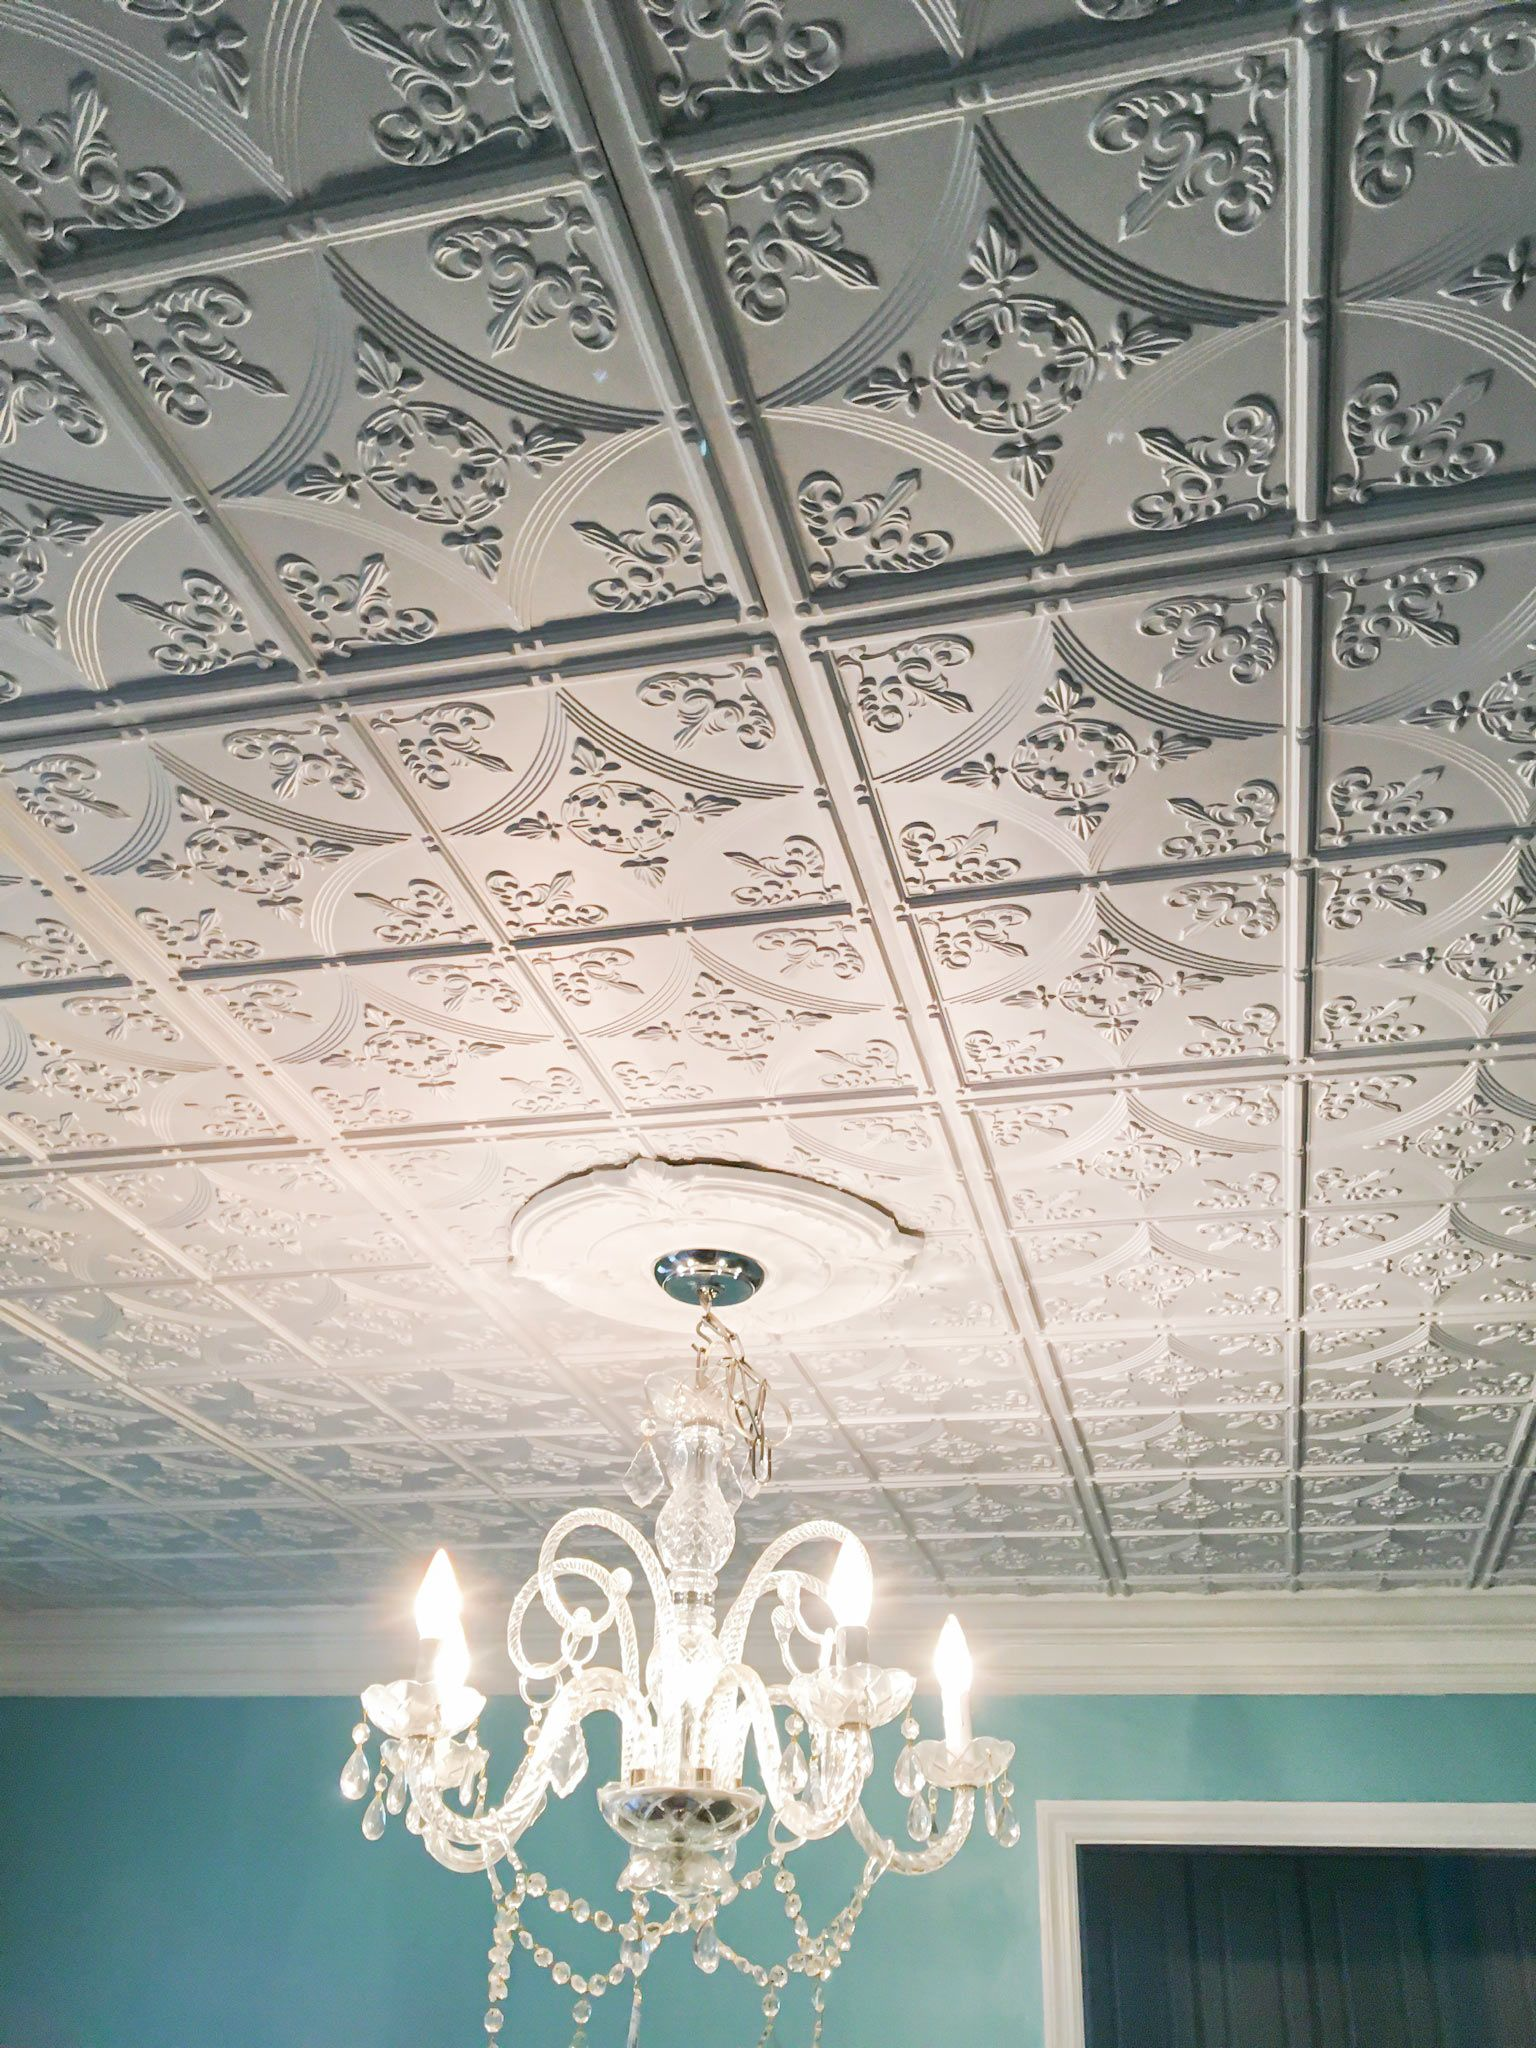 Transform Your Room With Glue Up Ceiling Tiles Decorative Faux